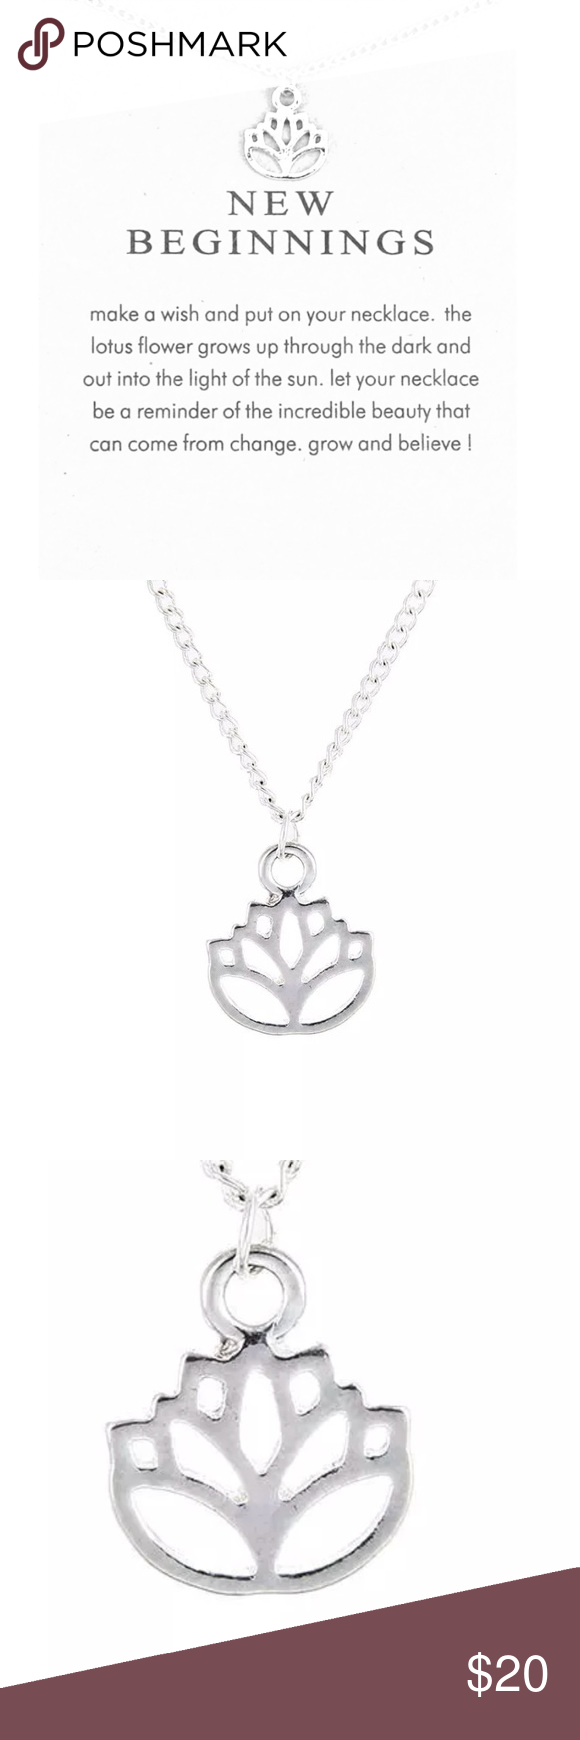 Dogeared Lotus New Beginnings Silver Necklace Brand New Never